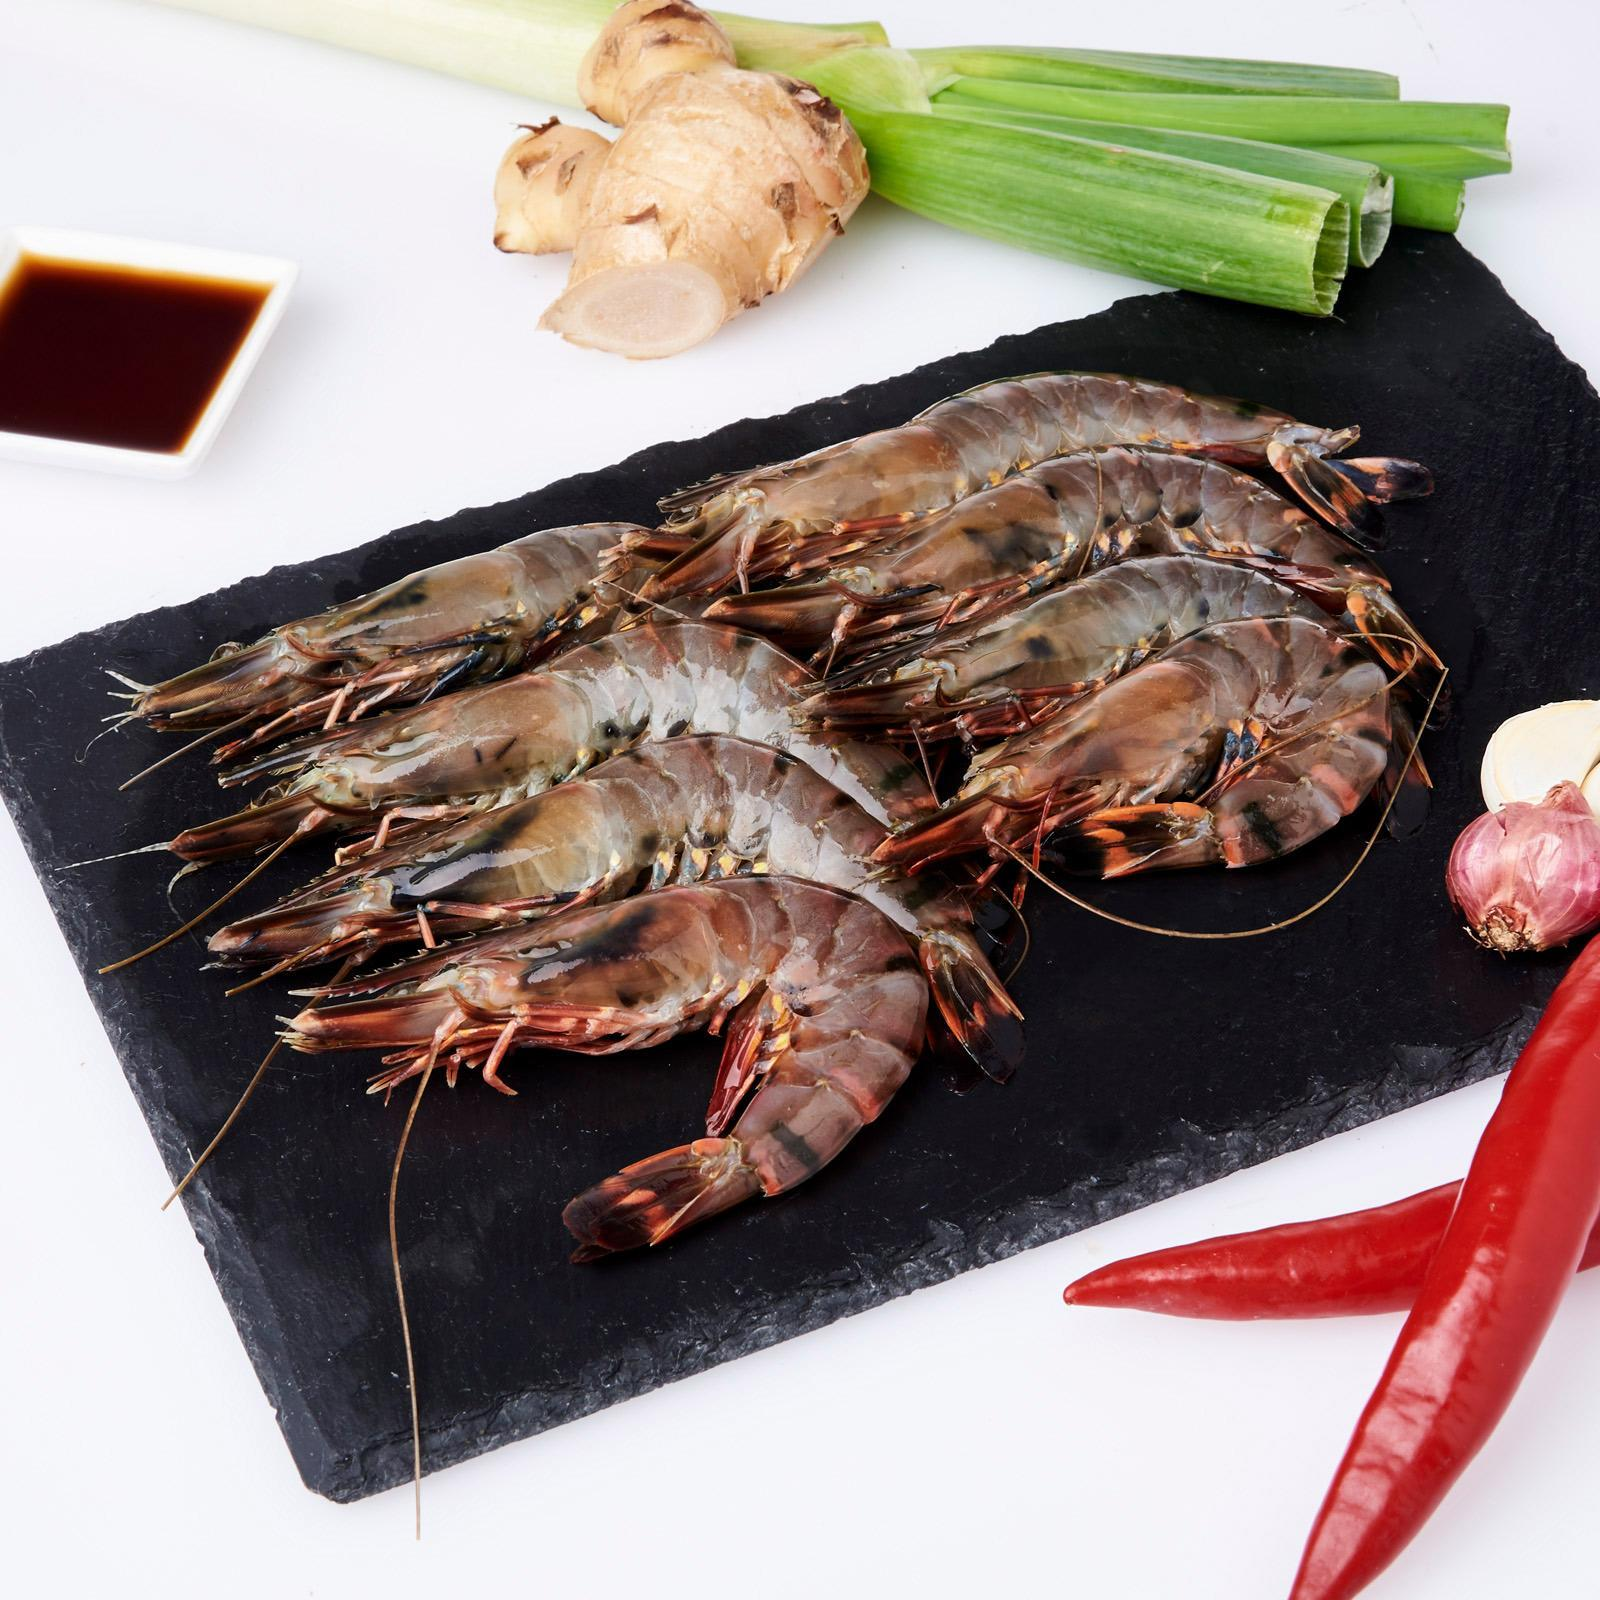 Serve by Hai Sia Seafood - Fresh Serve Tiger Prawns